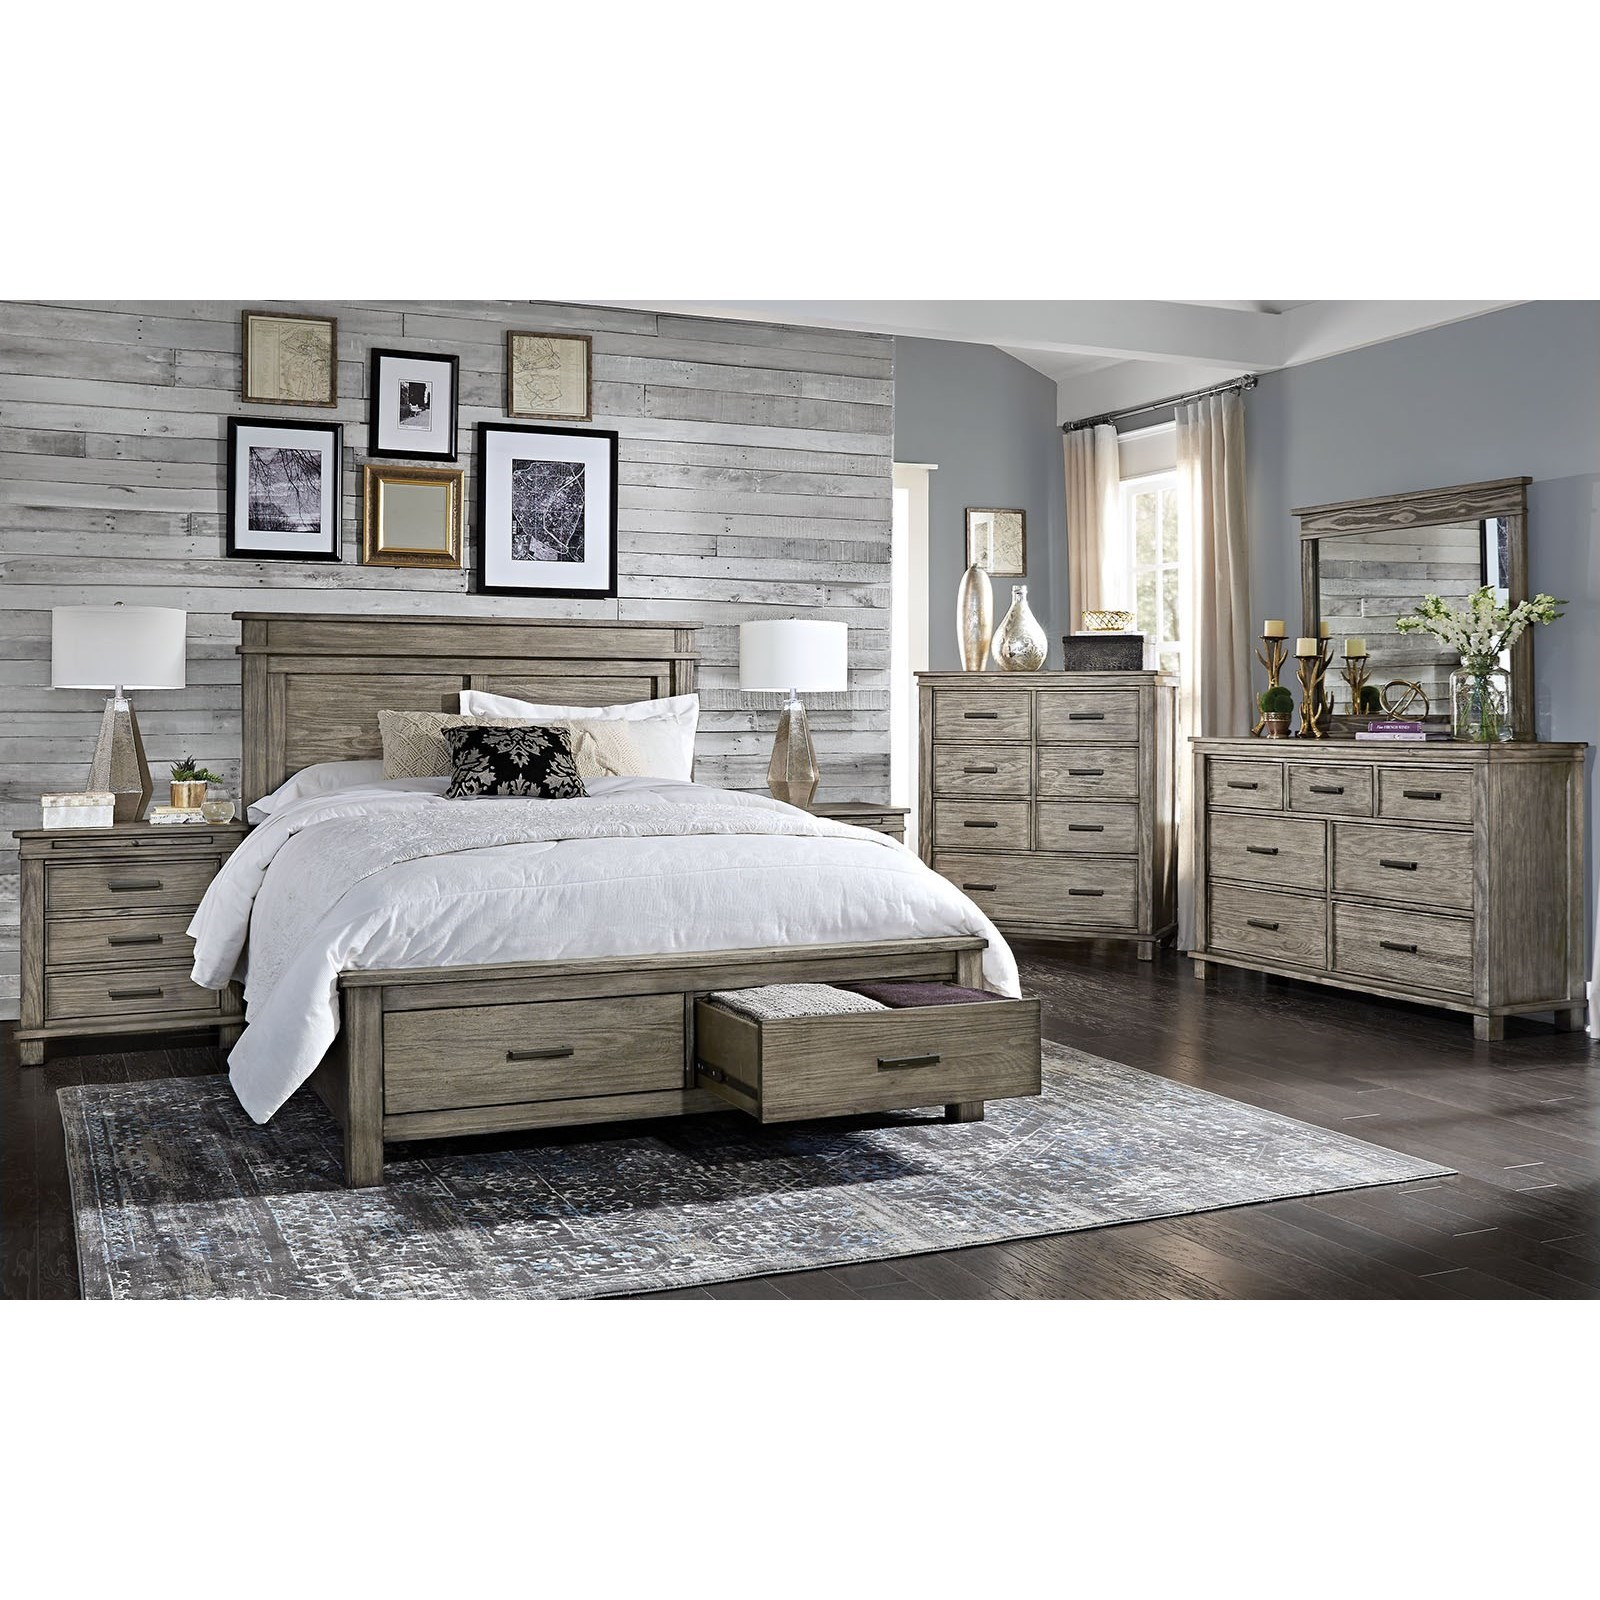 Glacier Point King Storage Bedroom Group by A-A at Walker's Furniture